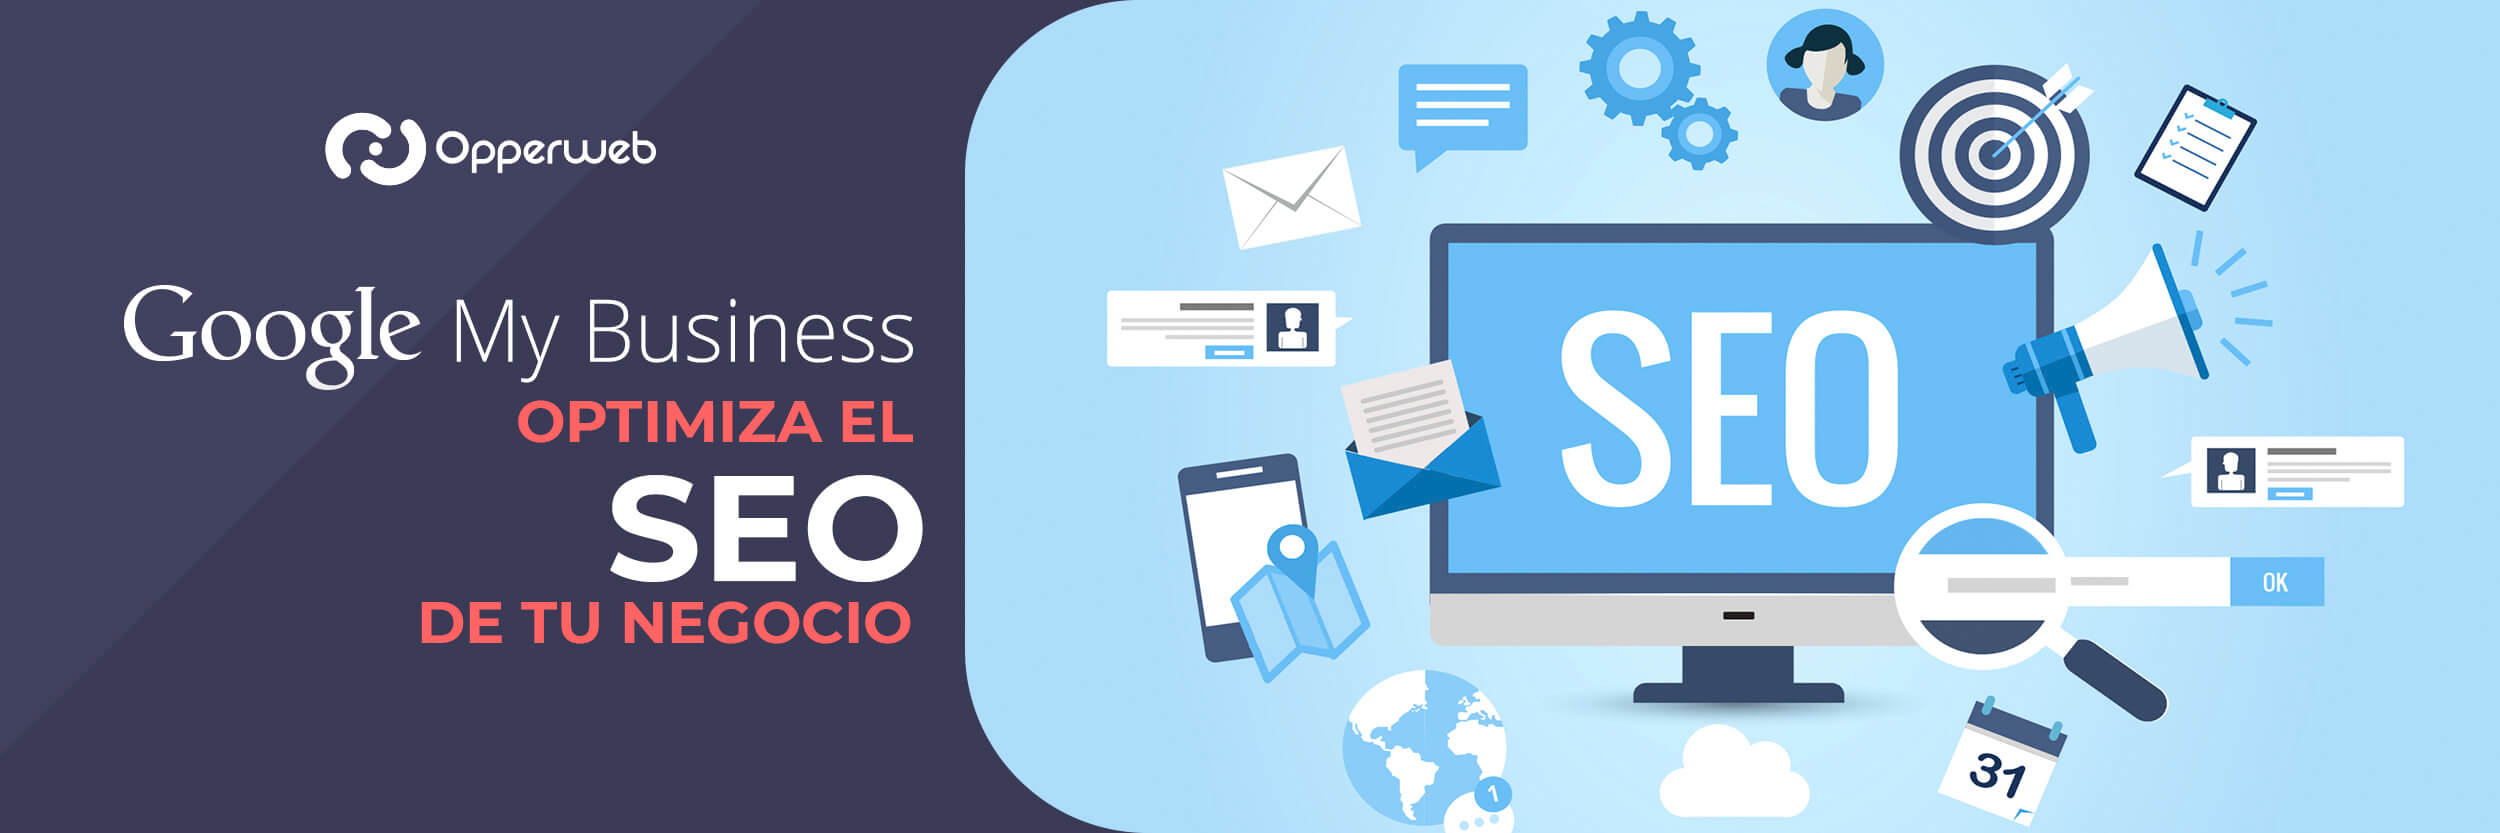 Google My Business optimiza el SEO de tu negocio